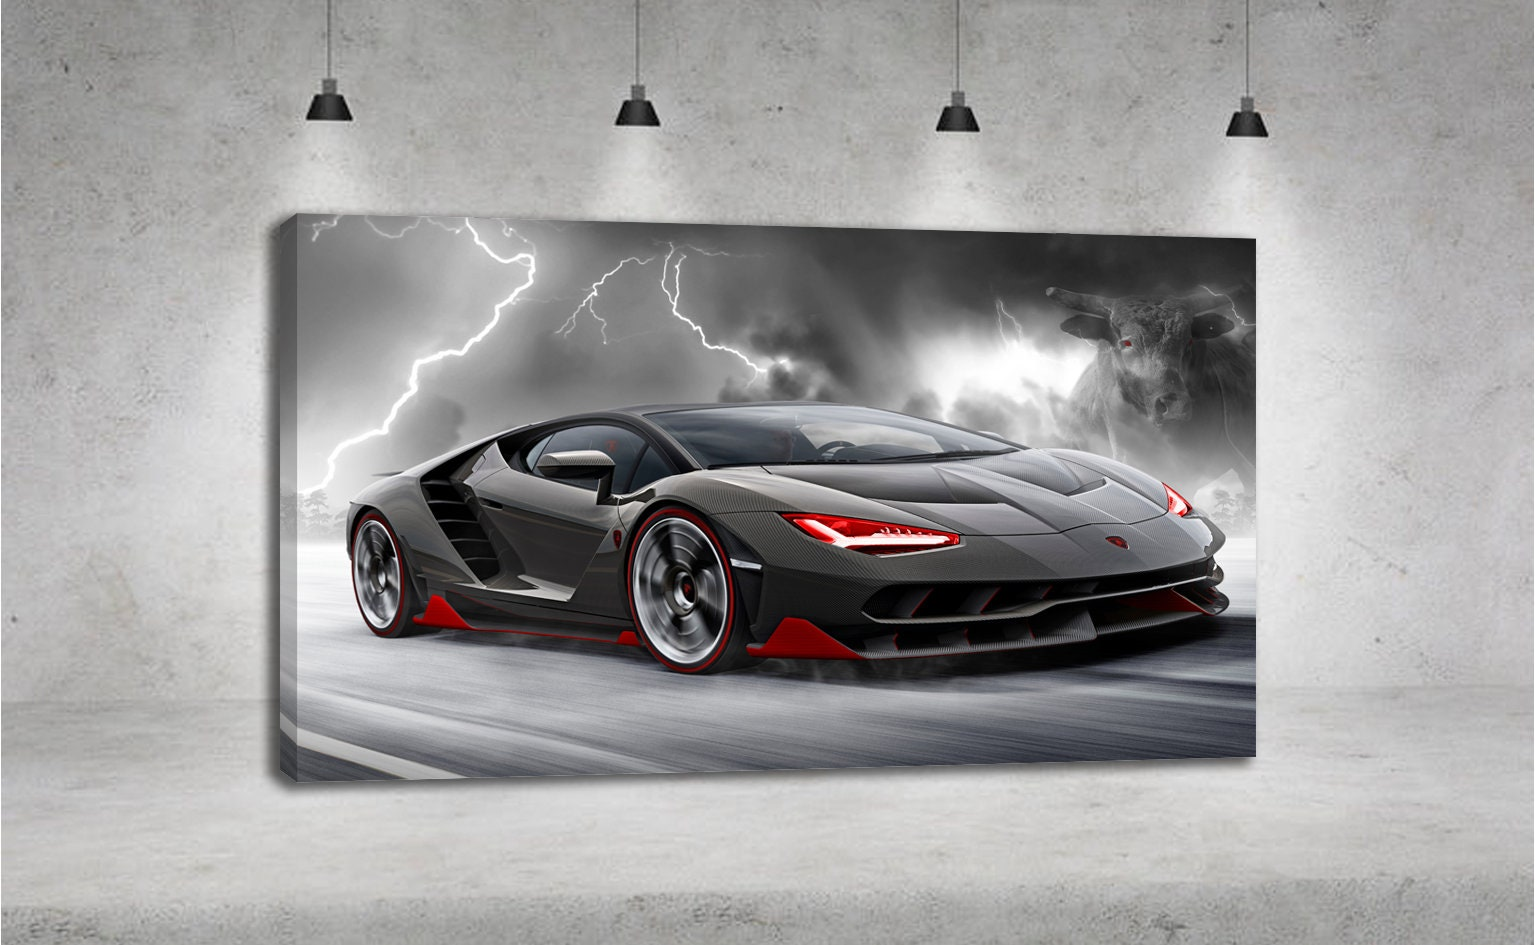 Lamborghini Centenario Storm Lightning Bull Car Yellow Car Etsy